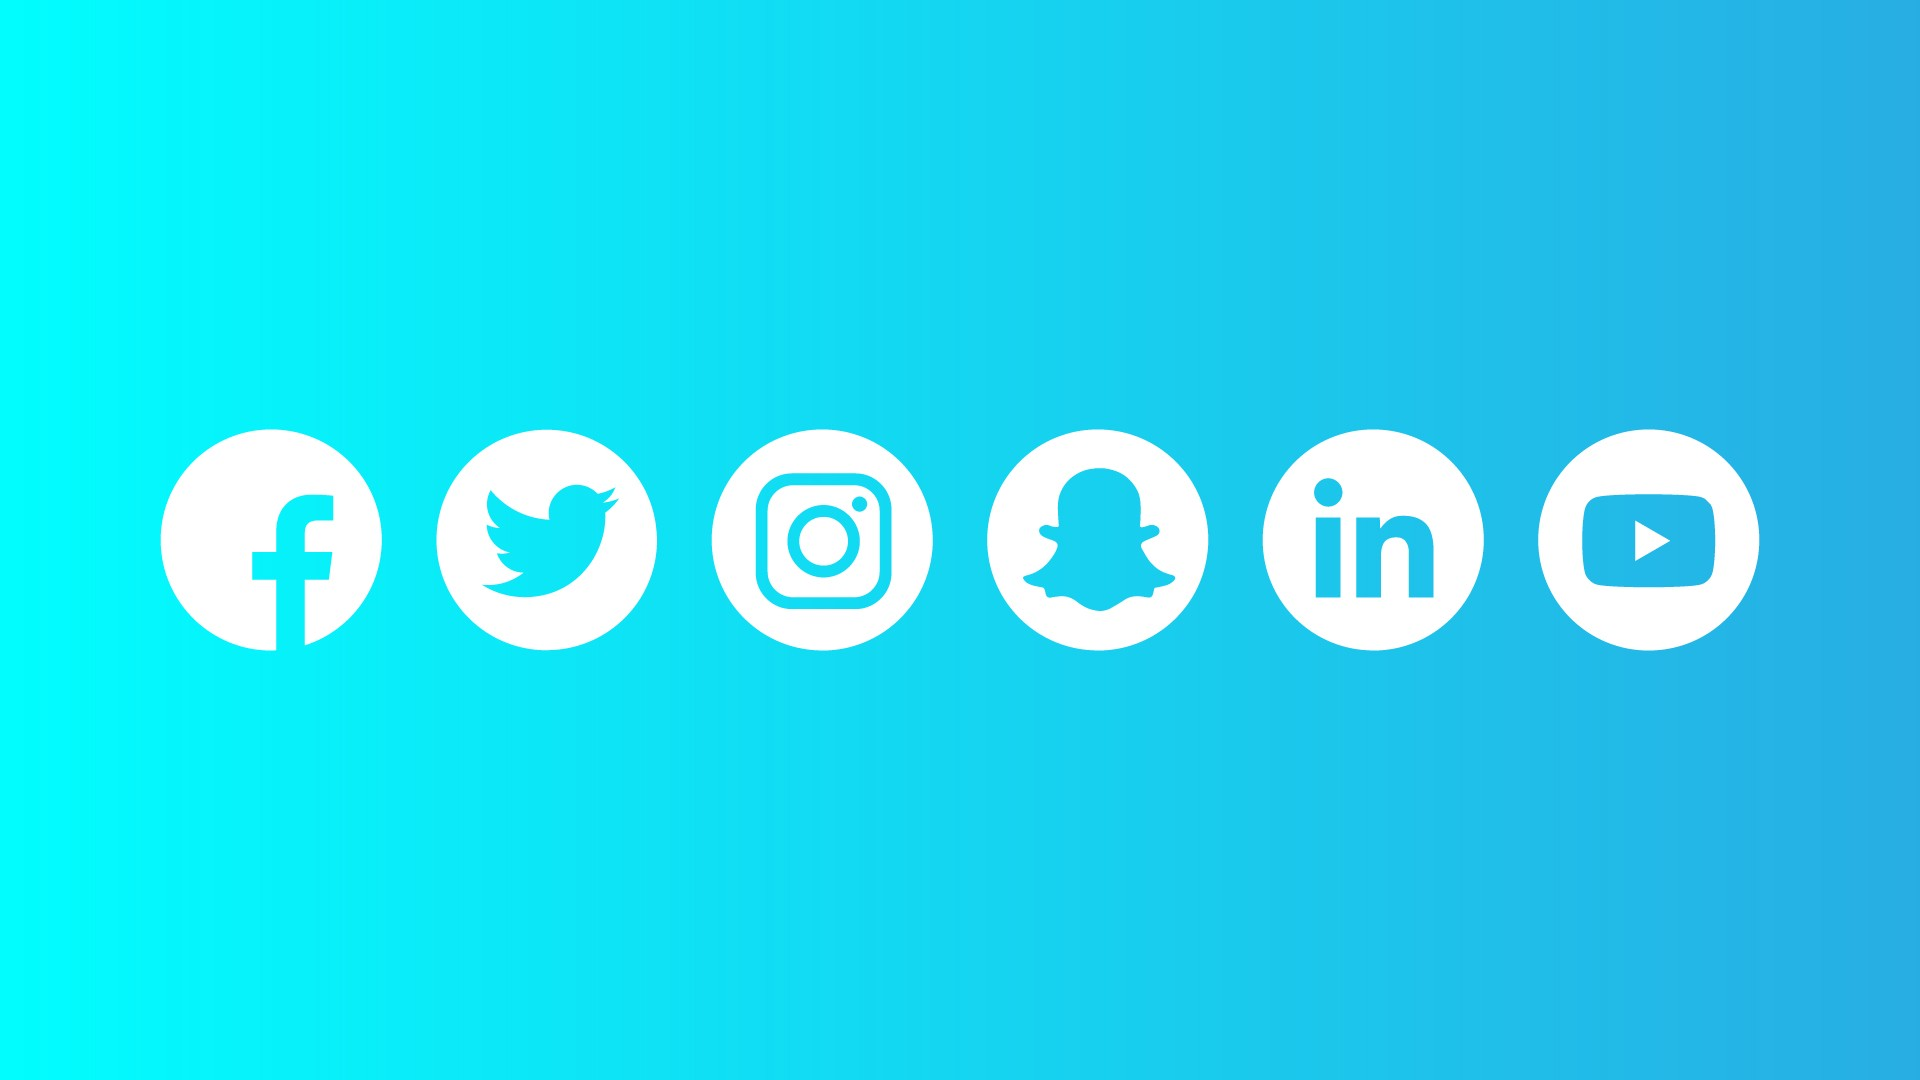 A blue graphic showing the symbols for Facebook, Twitter, Instagram, Snapchat, LinkedIn, and YouTube.